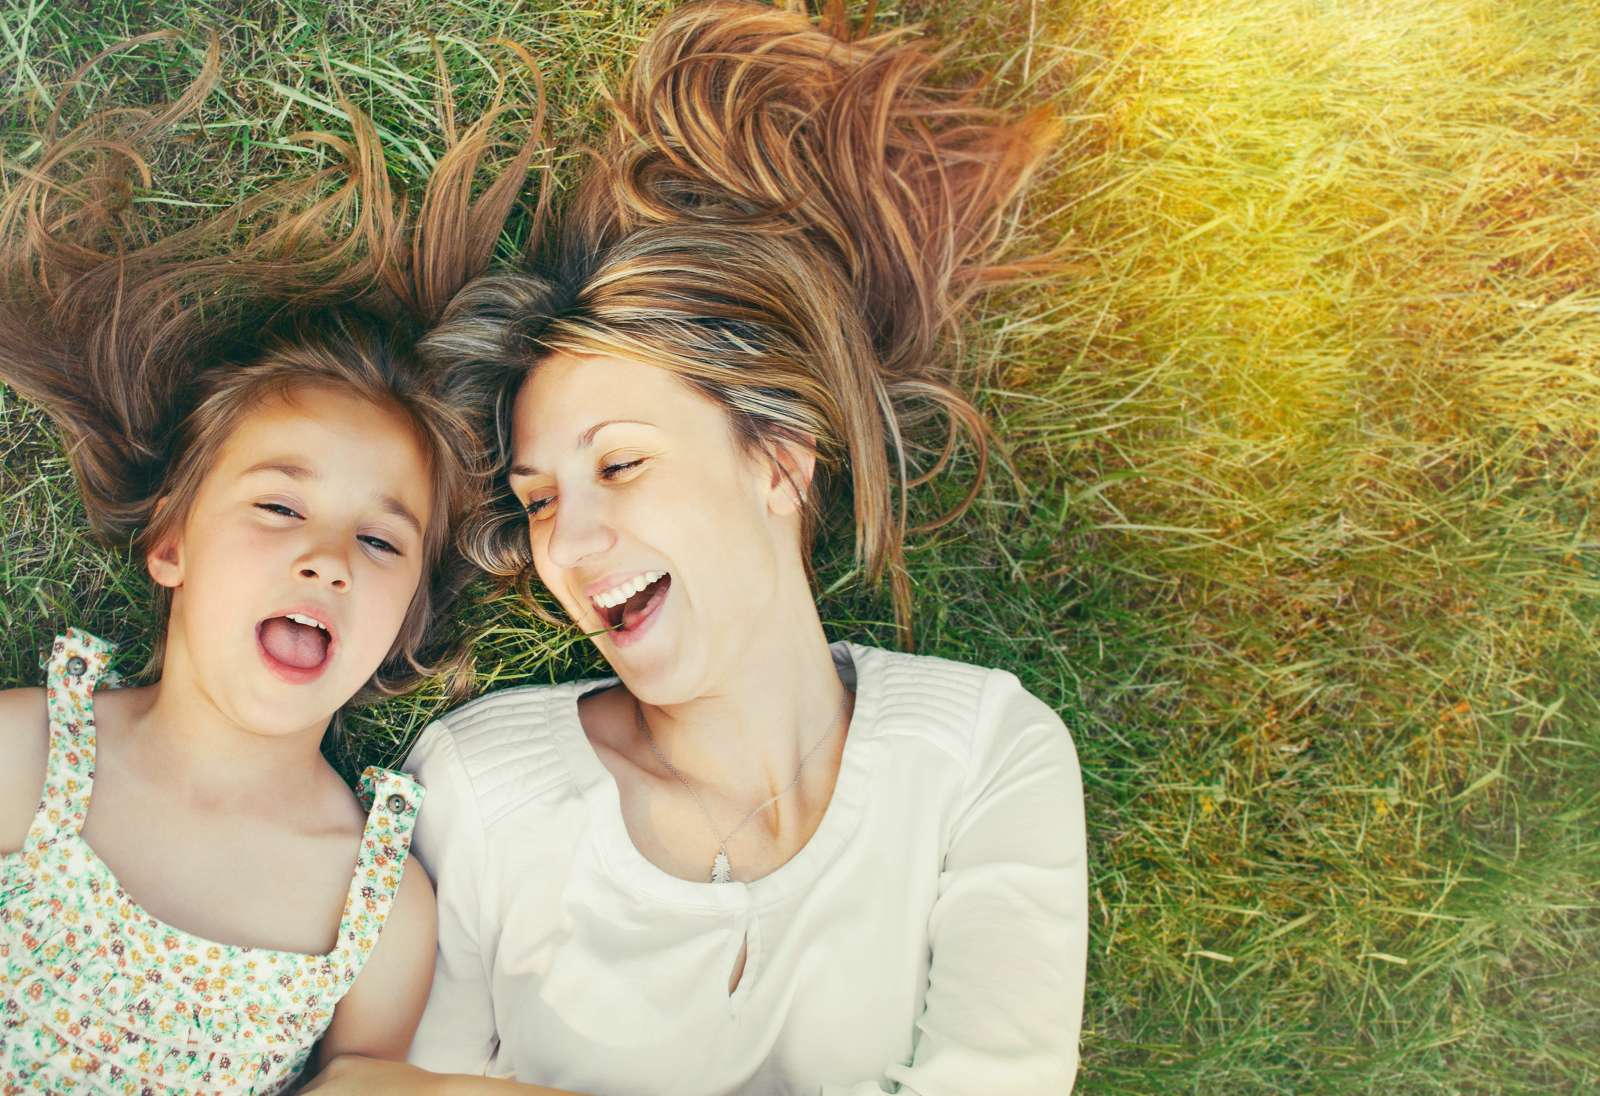 Mother and daughter laying in grass field and smiling